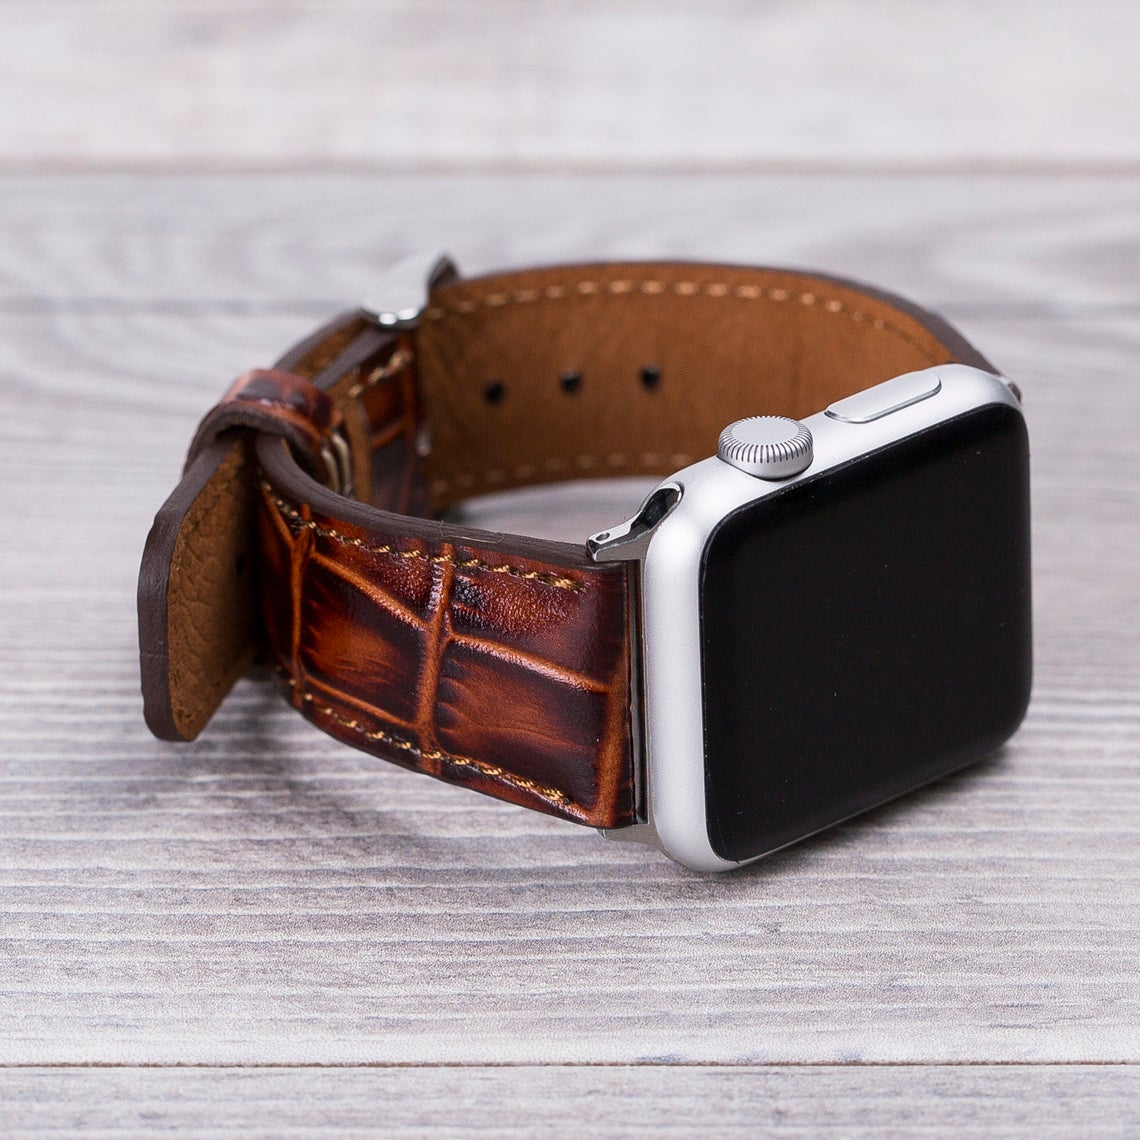 Apple Watch Leather Band Croco Pattern Brown